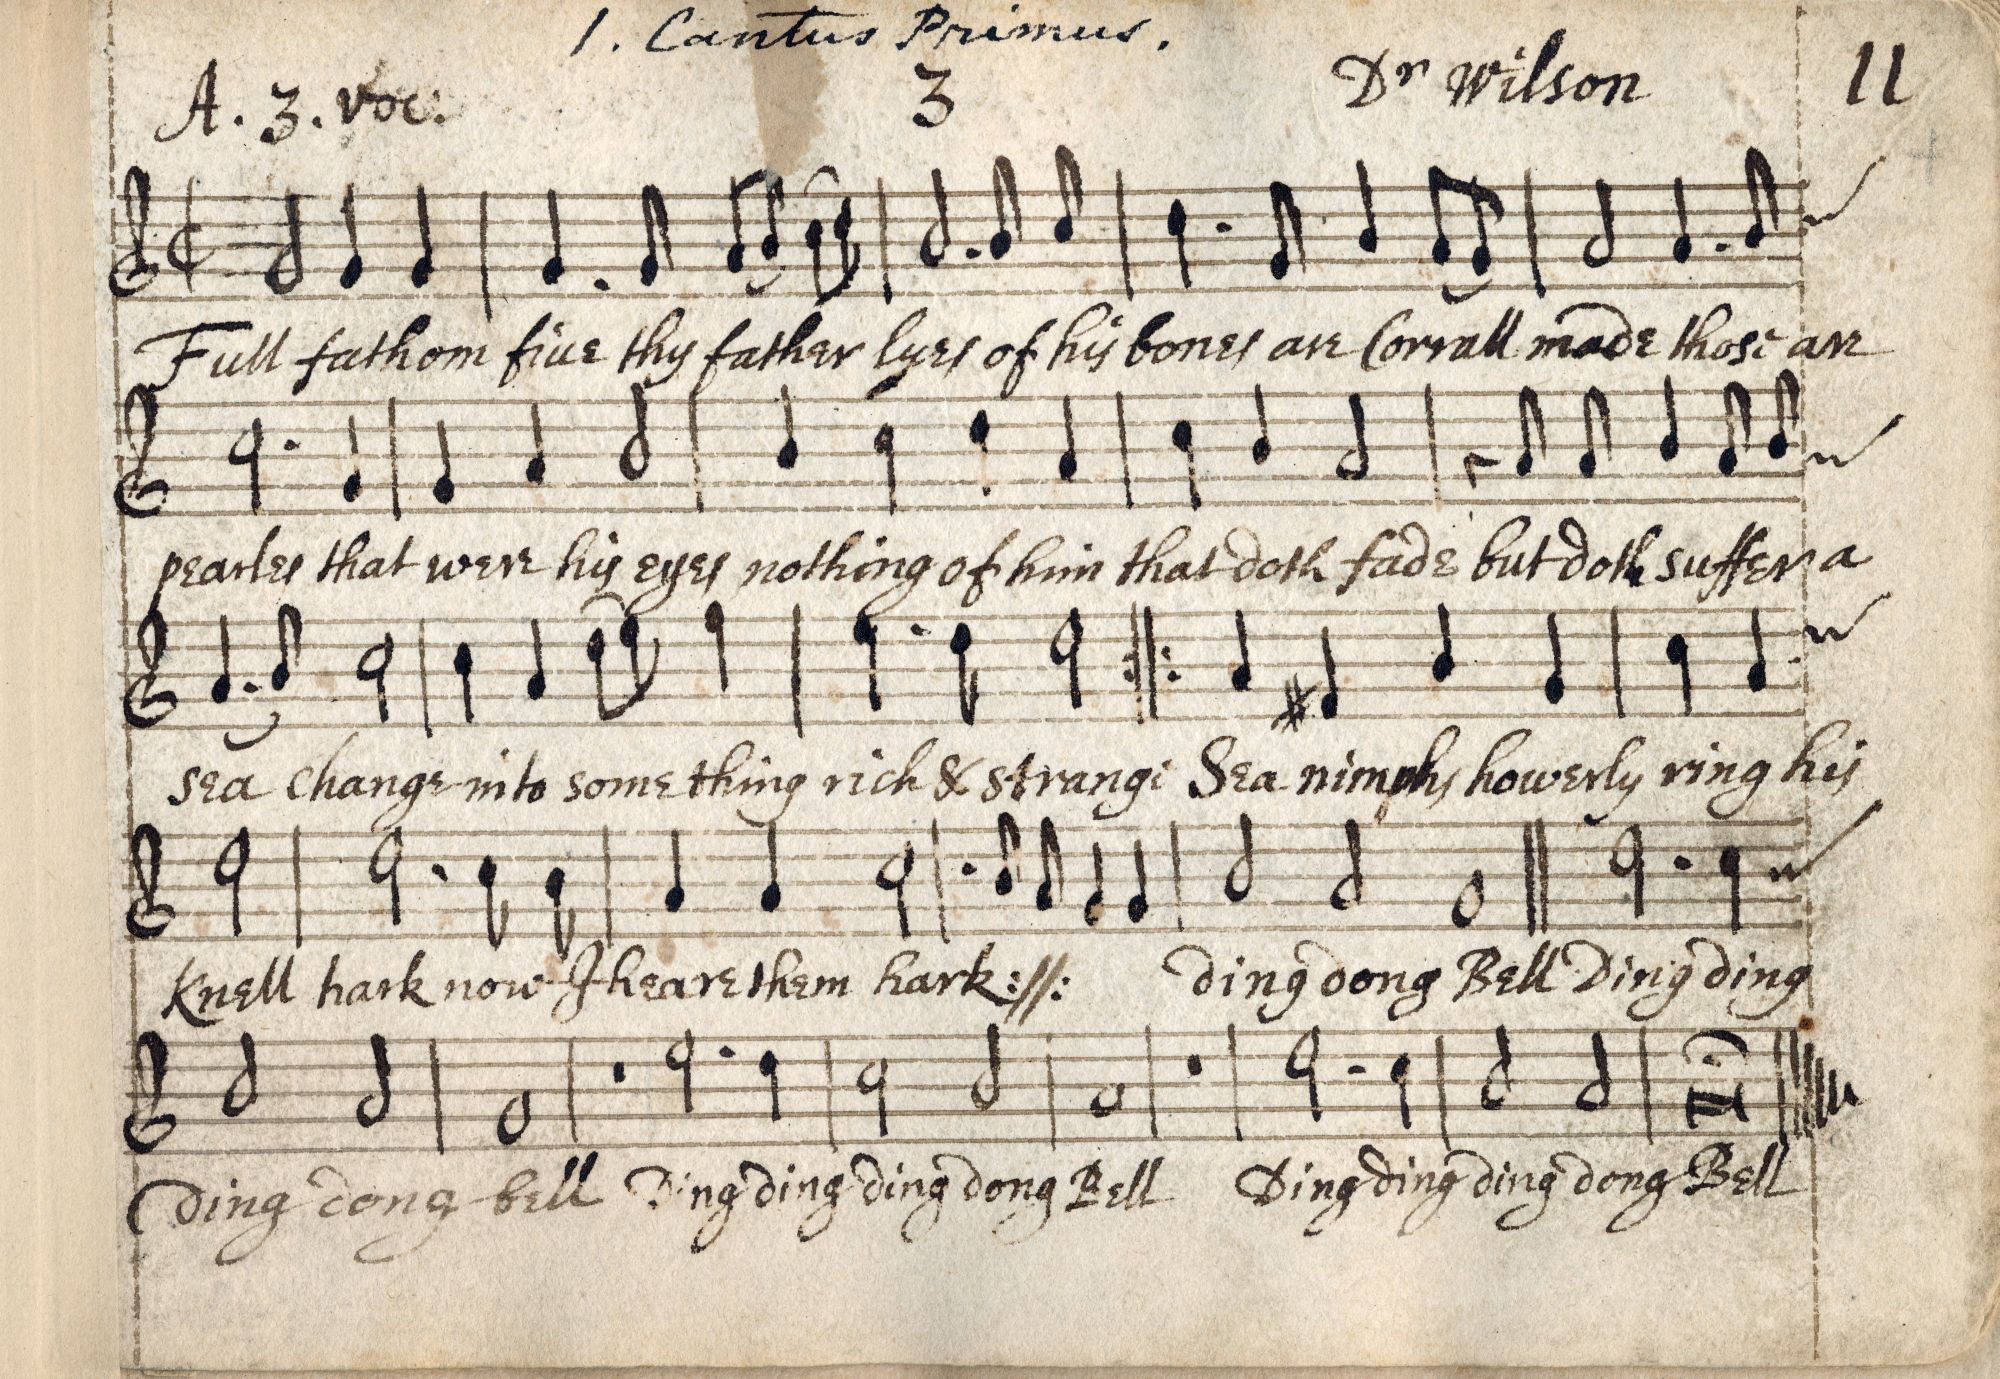 John Playford manuscript of songs from The Tempest by John Wilson, c.1660-67